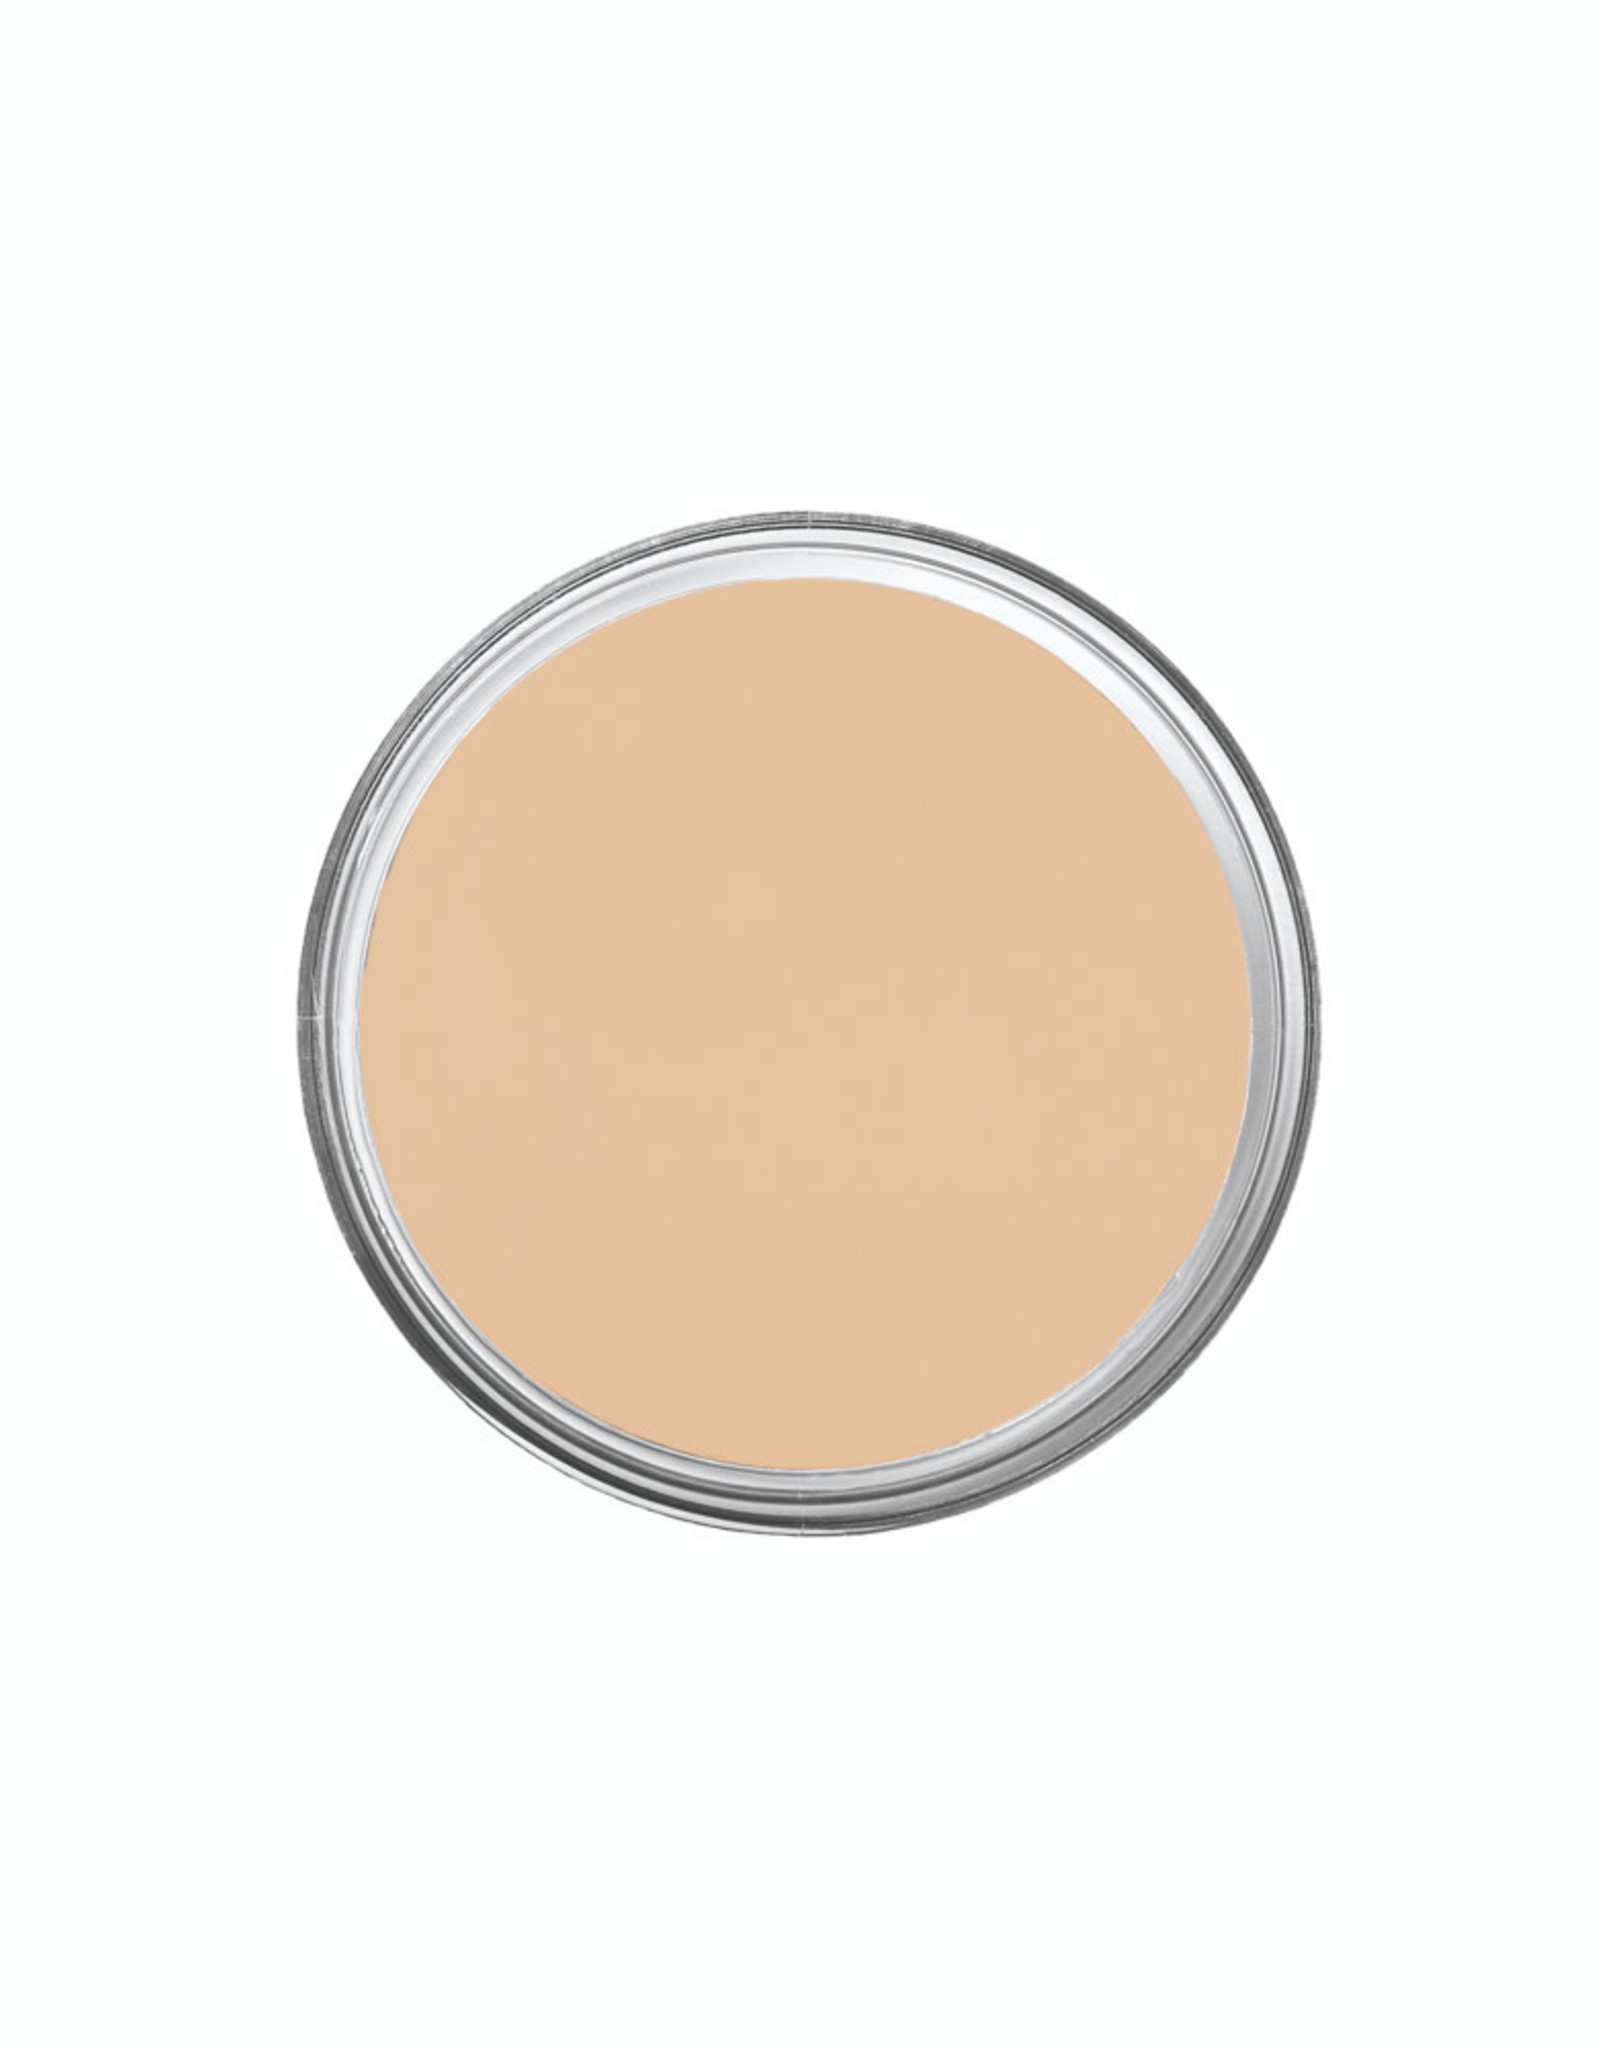 Ben Nye FOUNDATION-MATTE HD, WARM SAND, .5 OZ